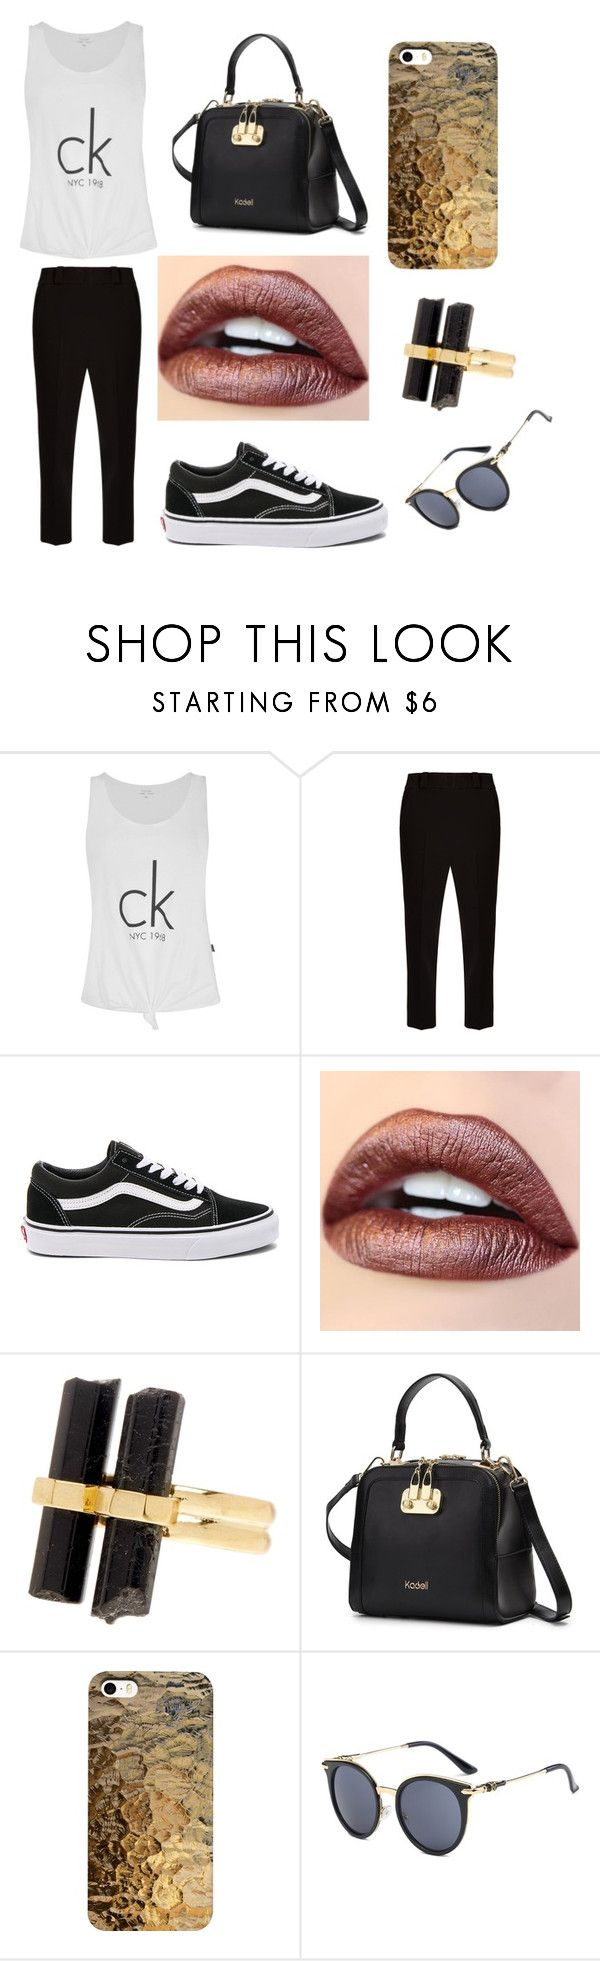 """Untitled #365"" by fashion-with-dudette on Polyvore featuring Calvin Klein, The Row, Vans and House of Harlow 1960"